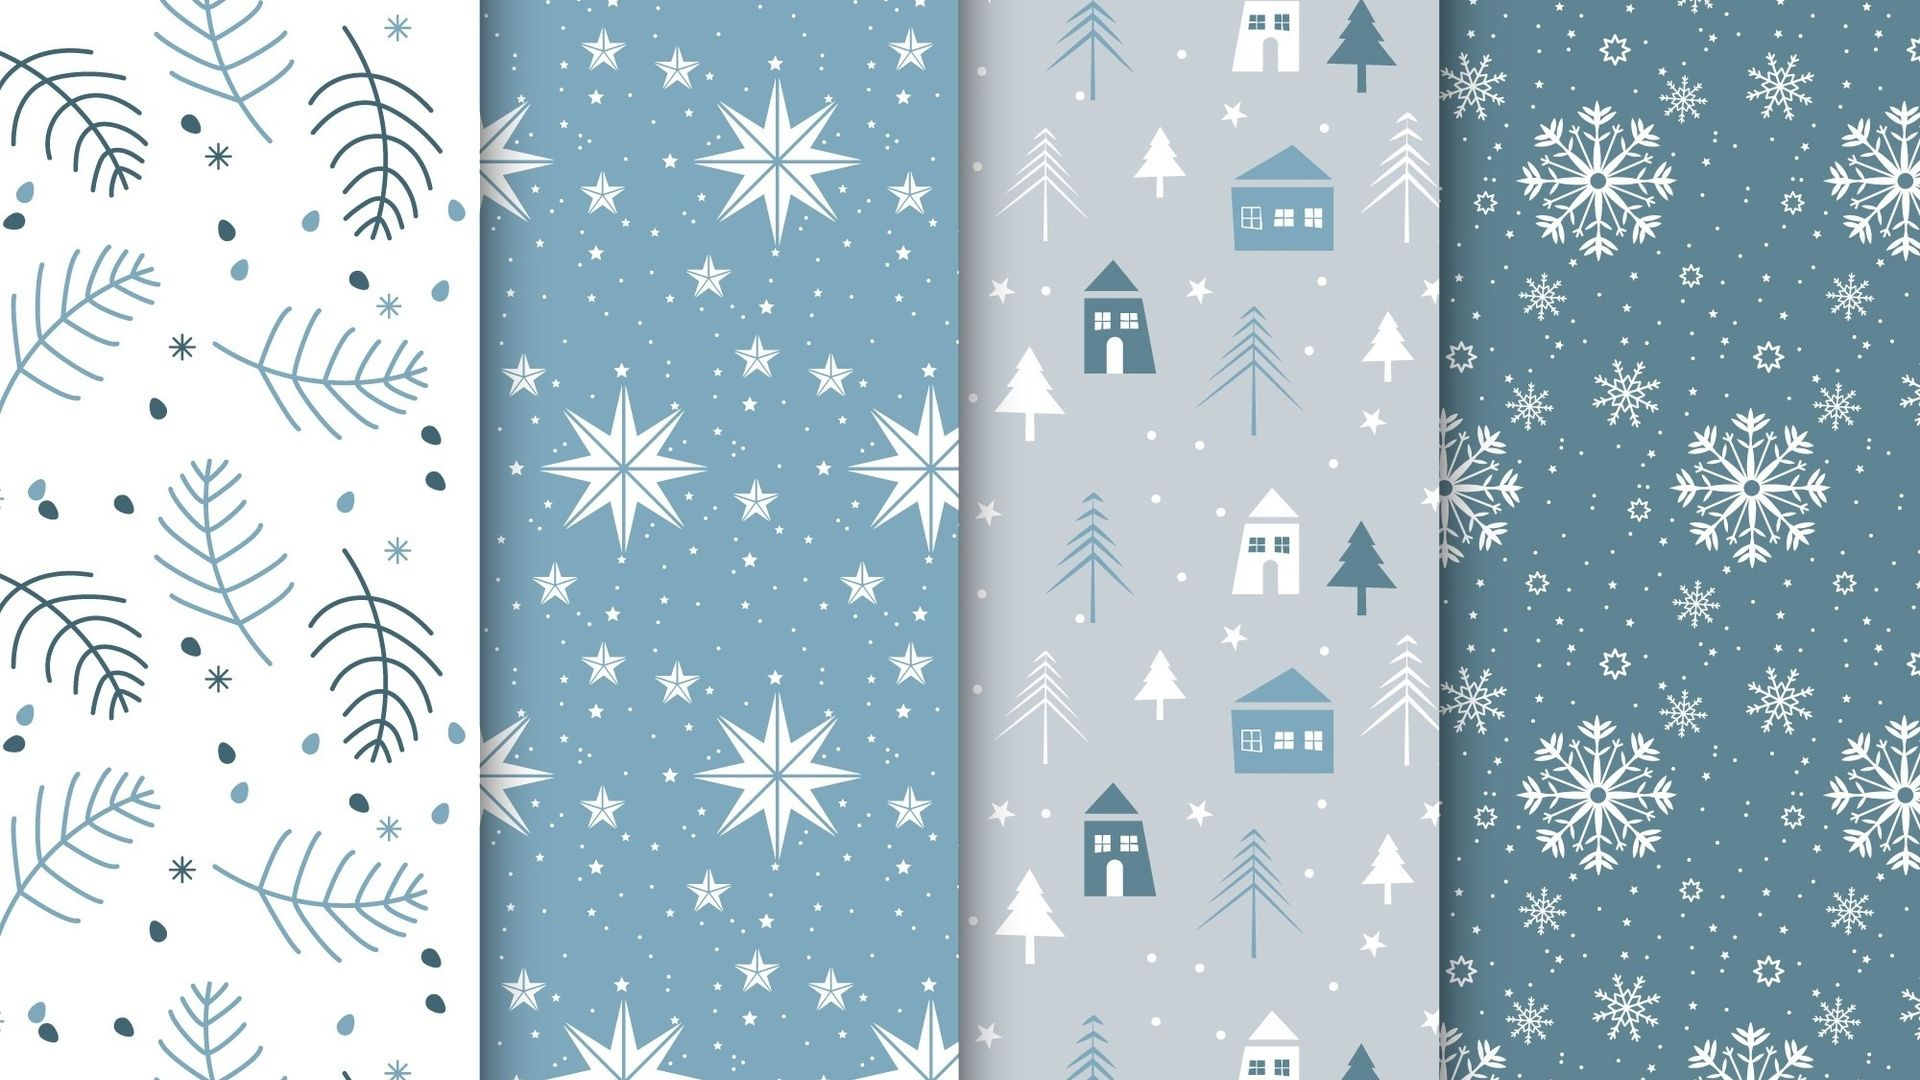 Christmas Scrapbooking Free Wallpaper and Background